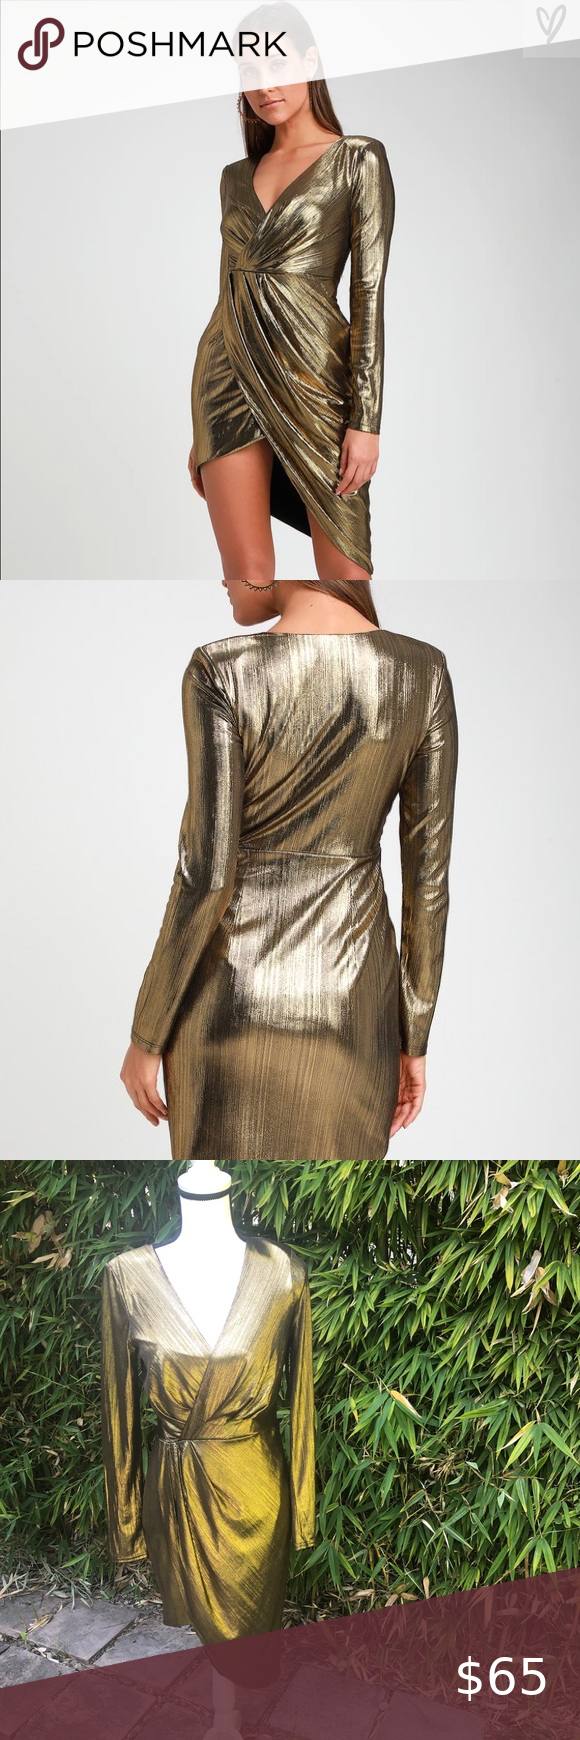 Ryse The Label Asymmetrical Gold Metallic Dress Ryse The Label Asymmetrical Gold Metallic Dress Like New Metallic Gold Dress Metallic Dress Green Fitted Dress [ 1740 x 580 Pixel ]